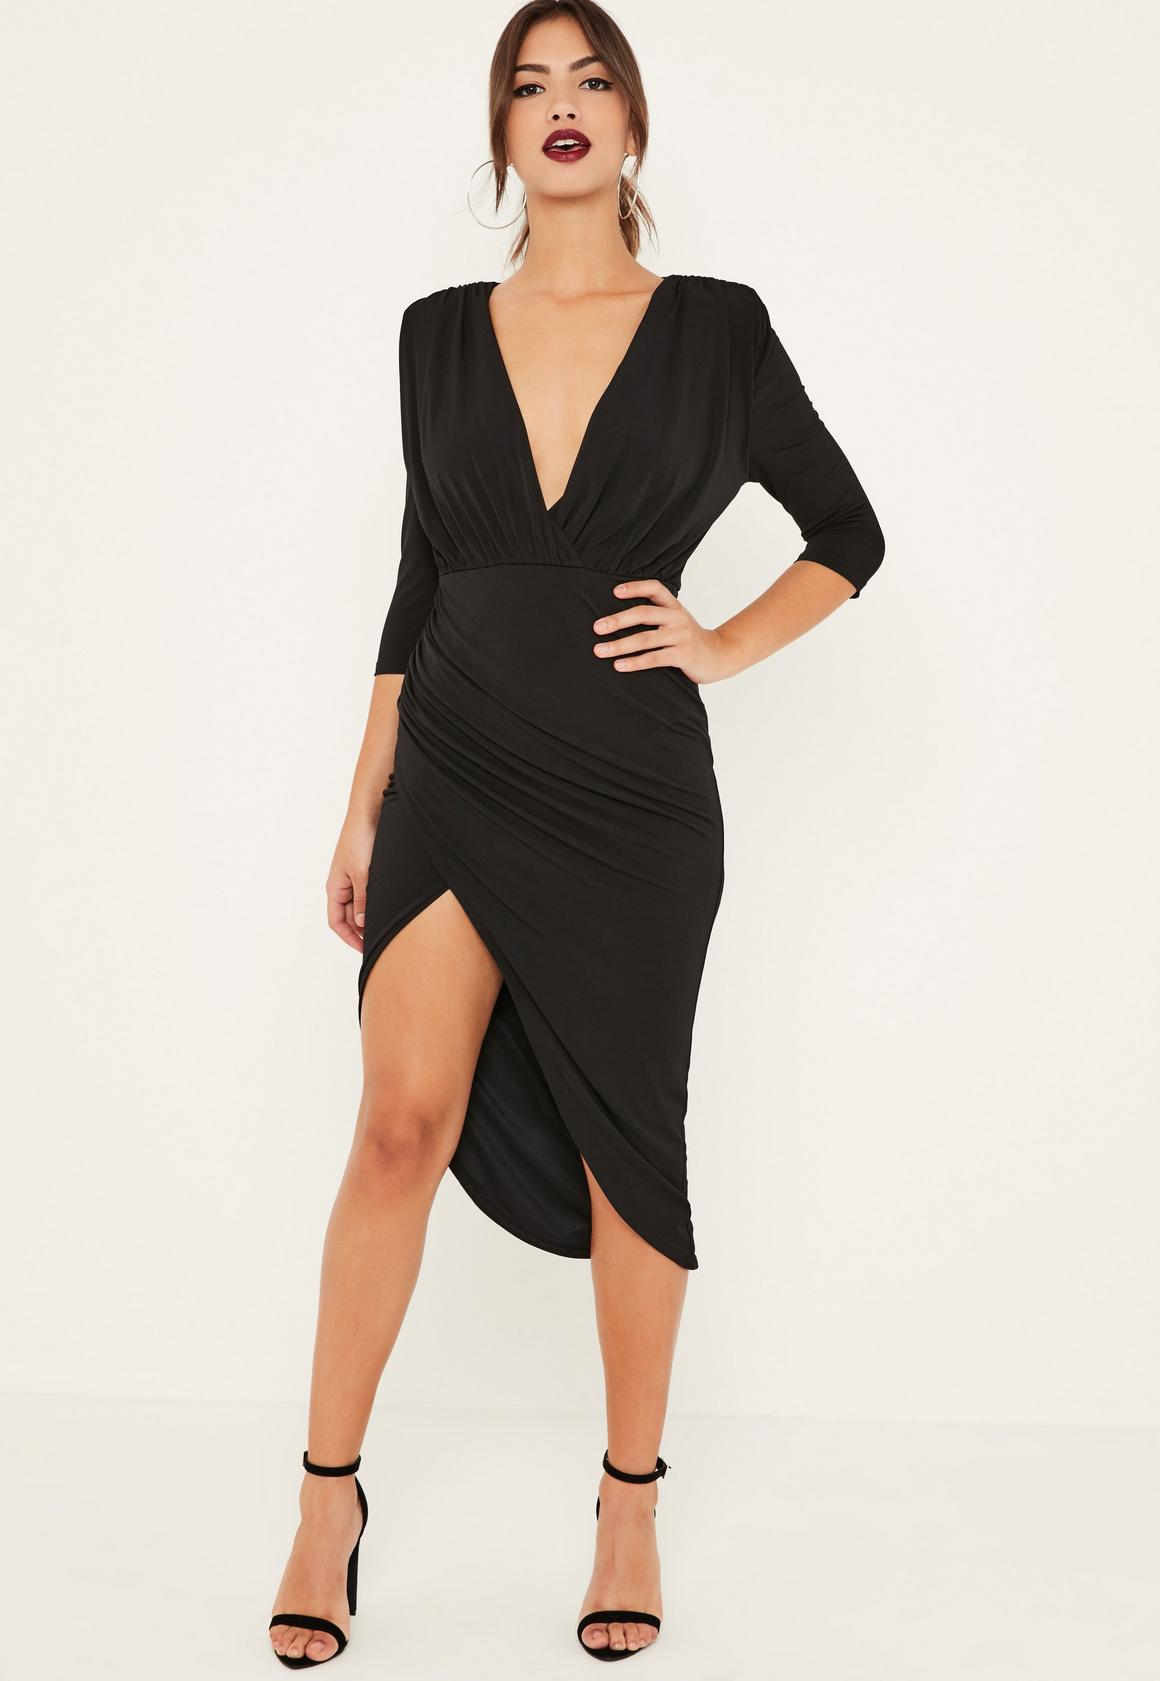 Asymmetrical Dress - Asymmetric Dresses | Missguided